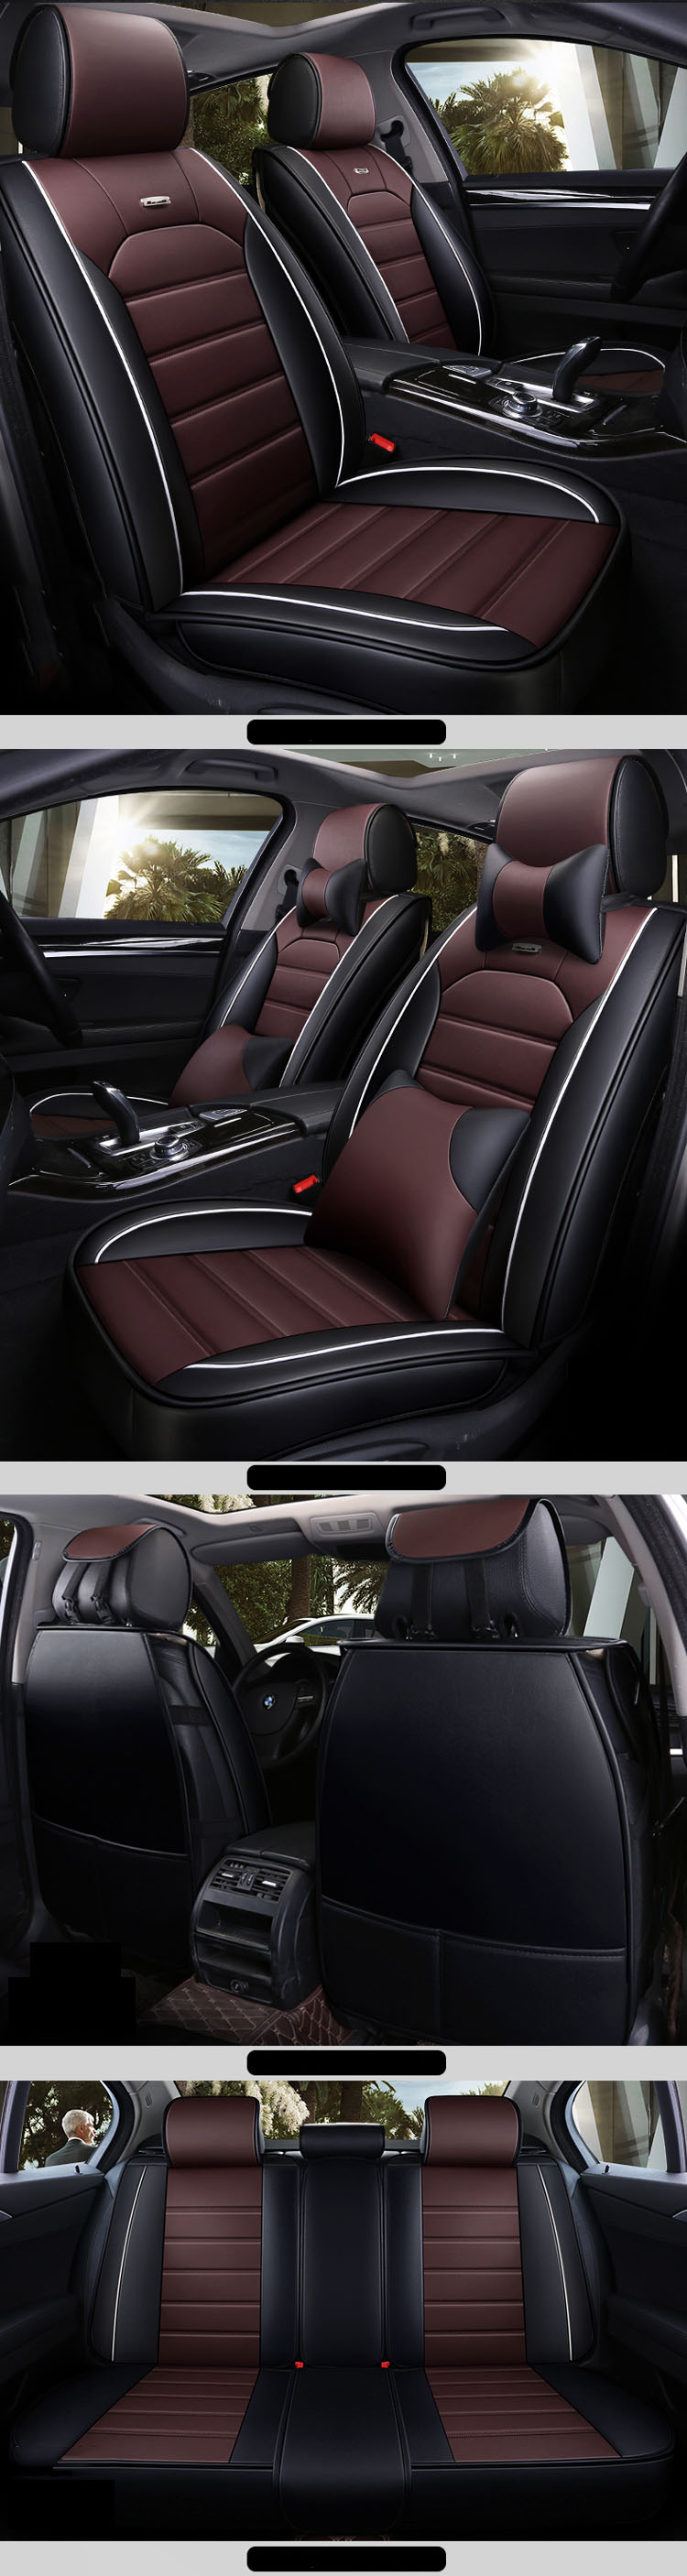 Quick Shipping Leather Car Seat Covers Universal Full Set For Most Car Models/Seat Covers Car Universal